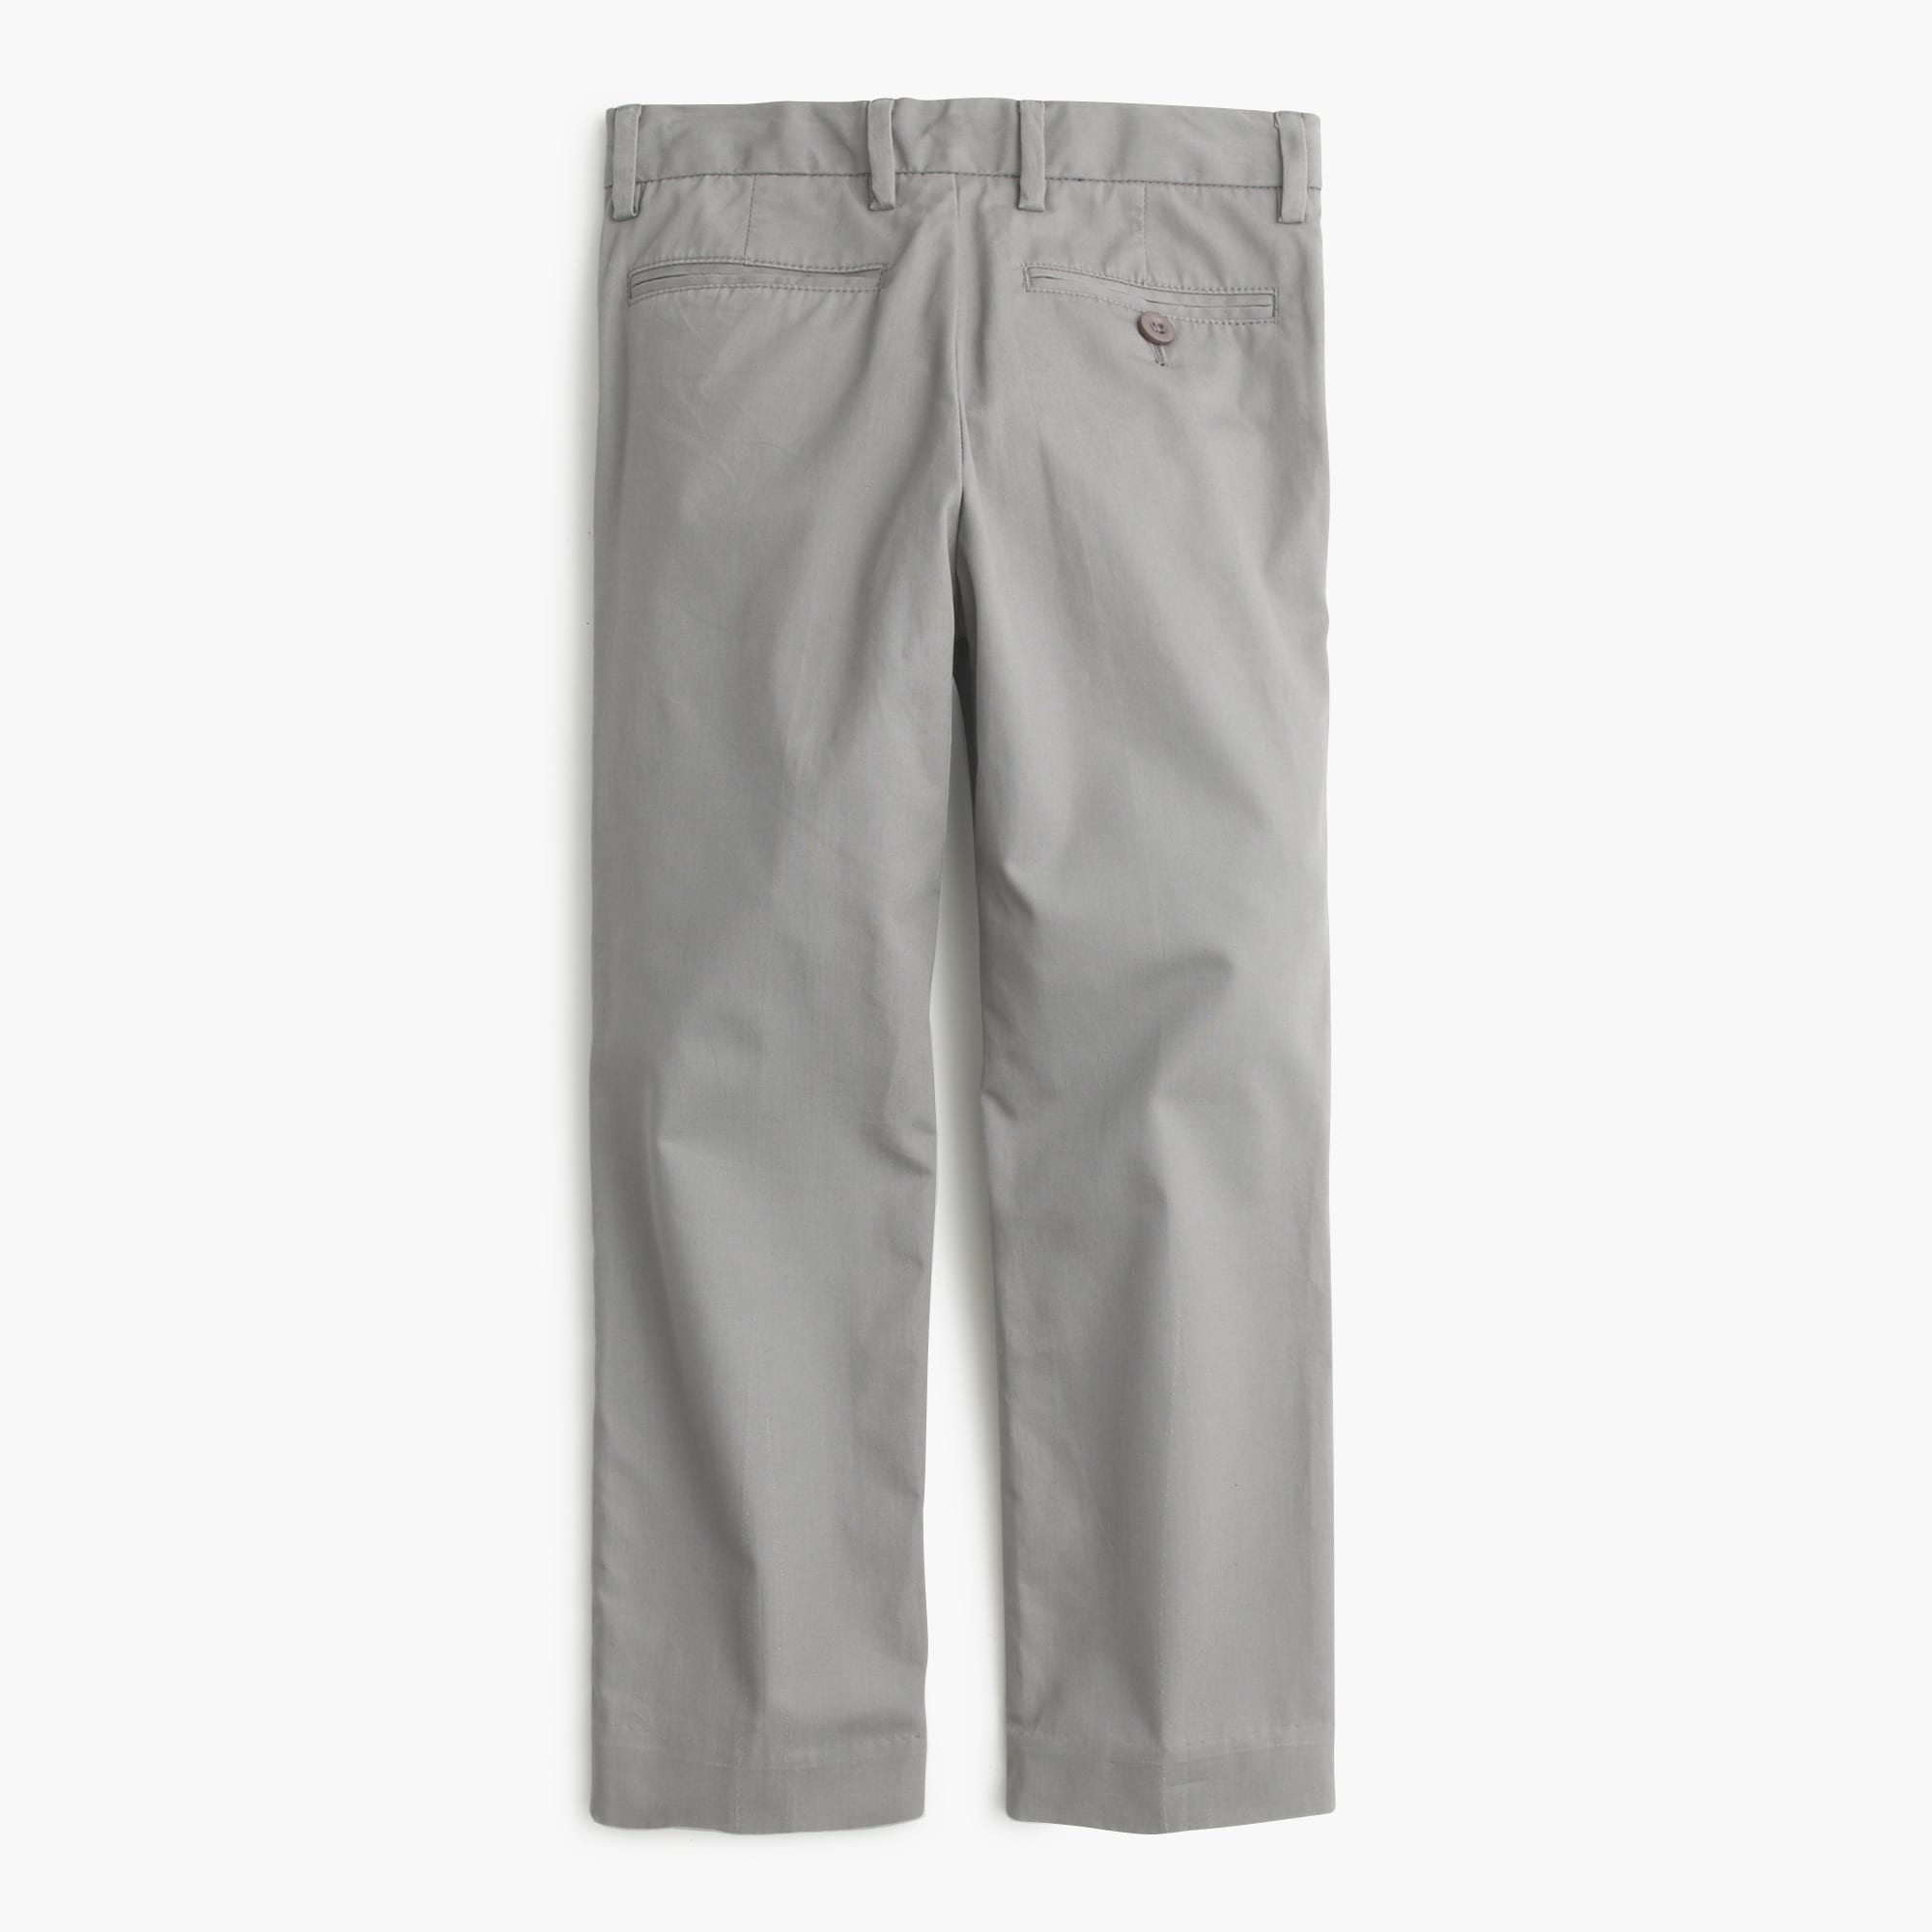 Image 3 for Boys' lightweight chino pant in slim fit